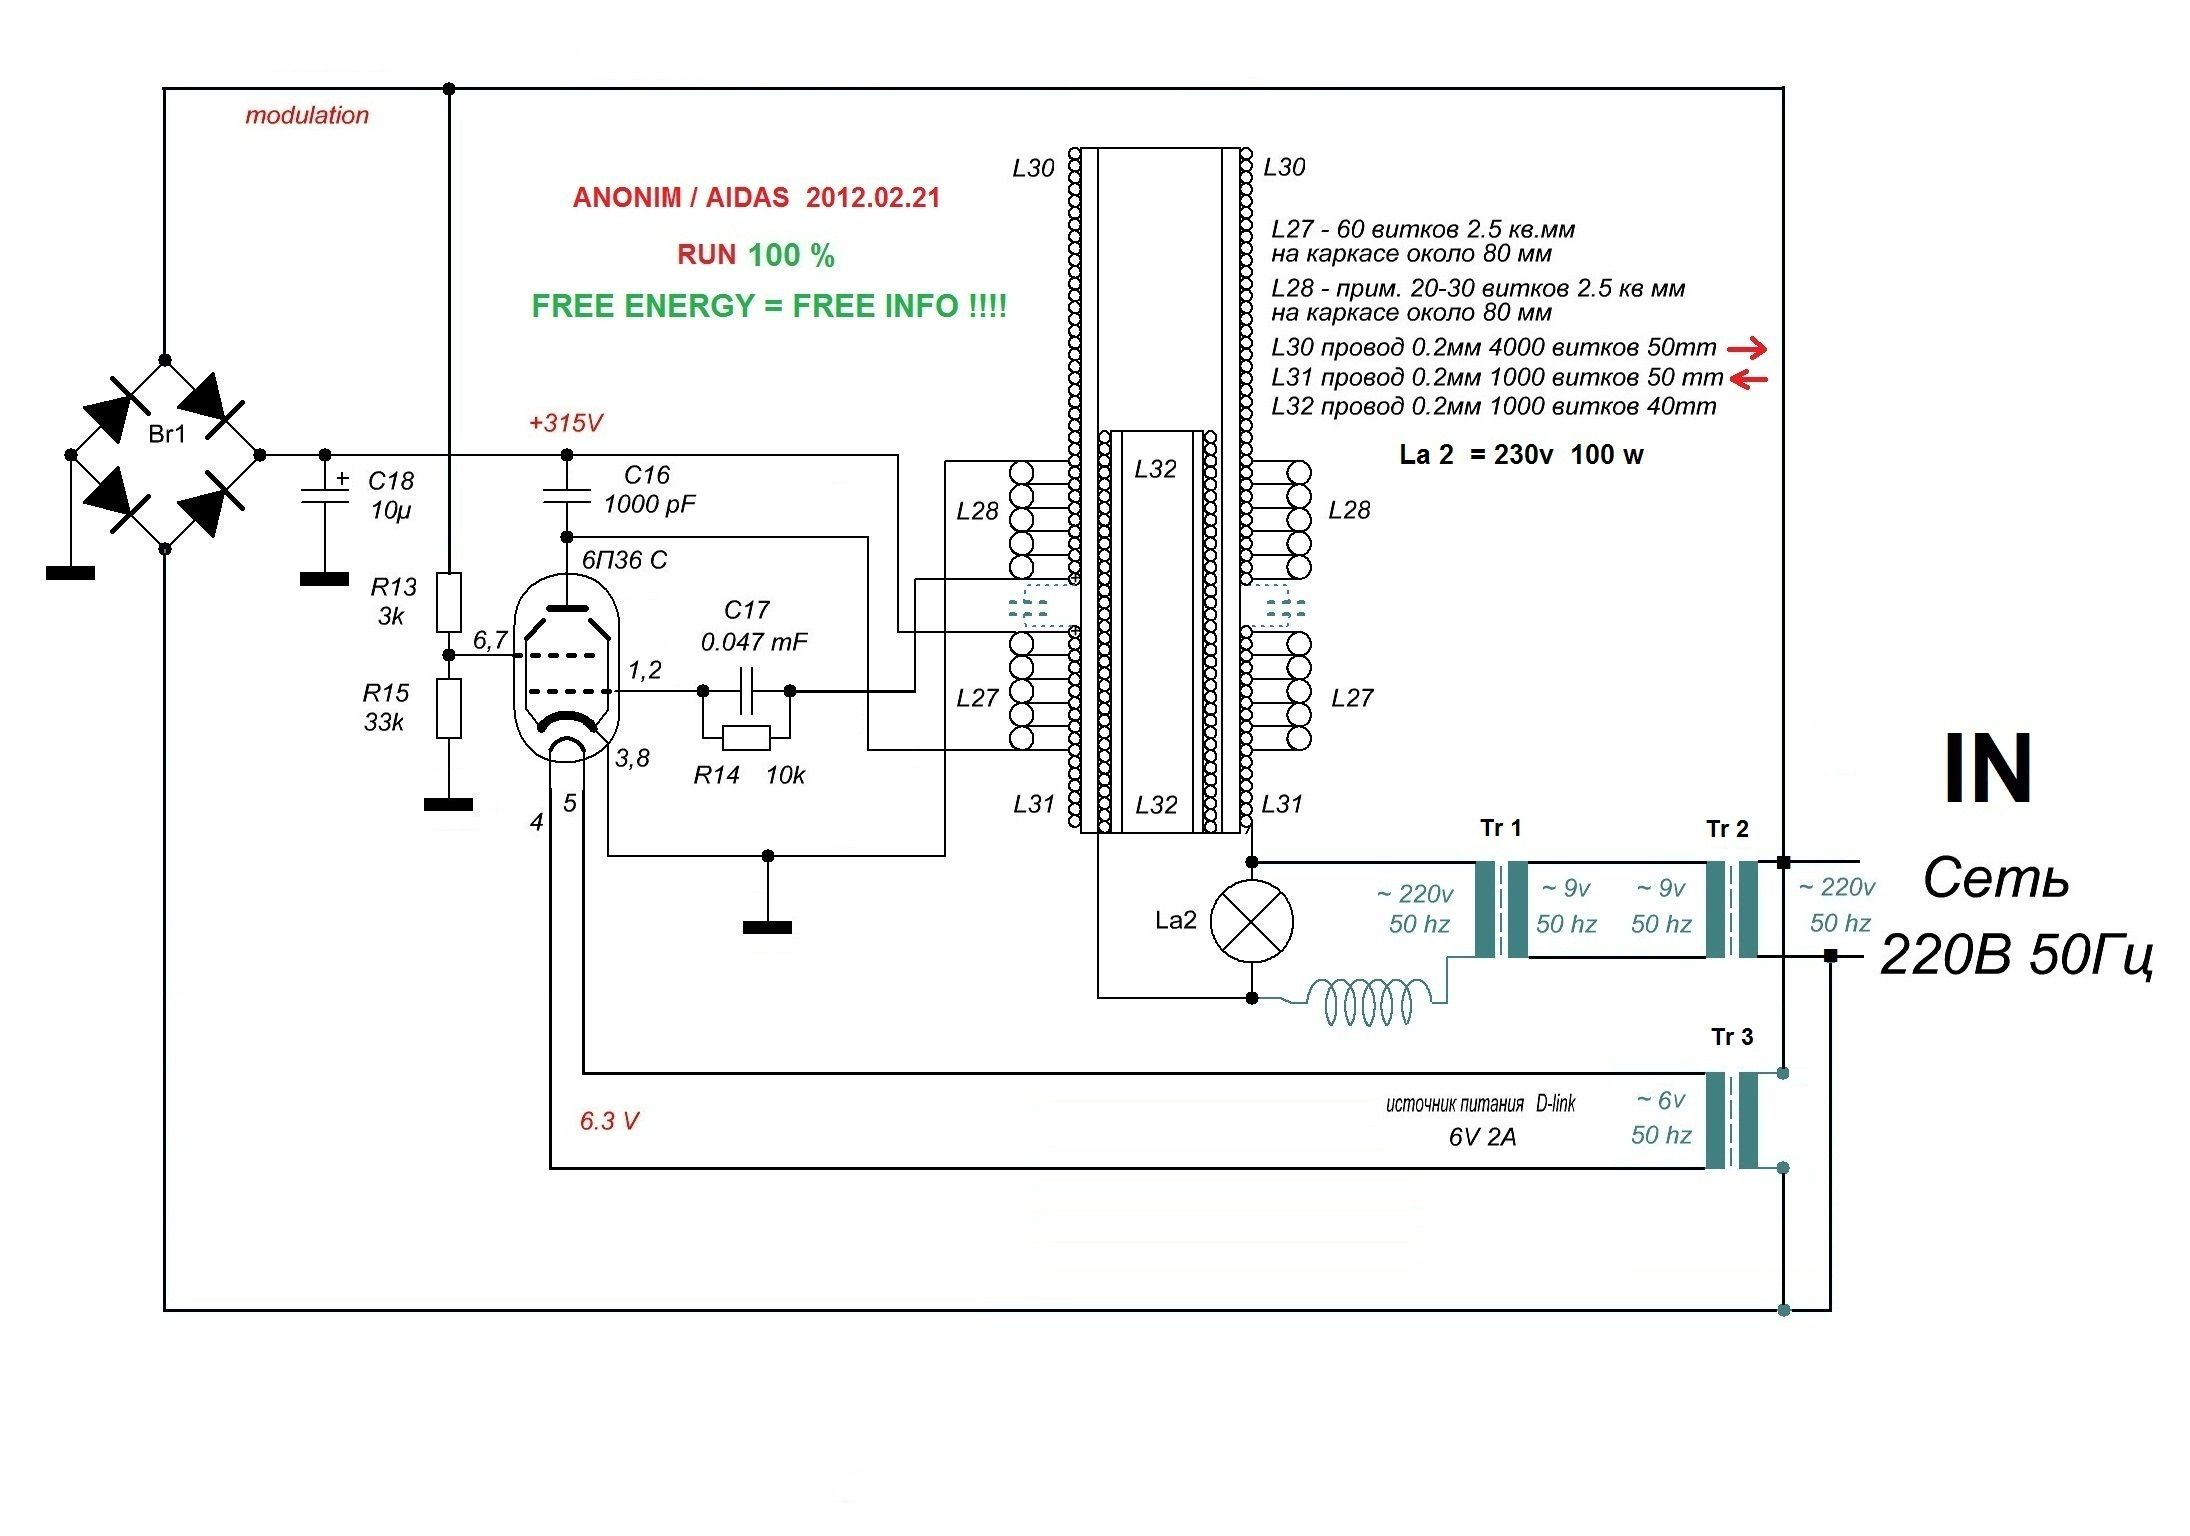 hight resolution of re selfrunning free energy devices up to 5 kw from tariel kapanadze free energy kapanadze free energy generator schematics